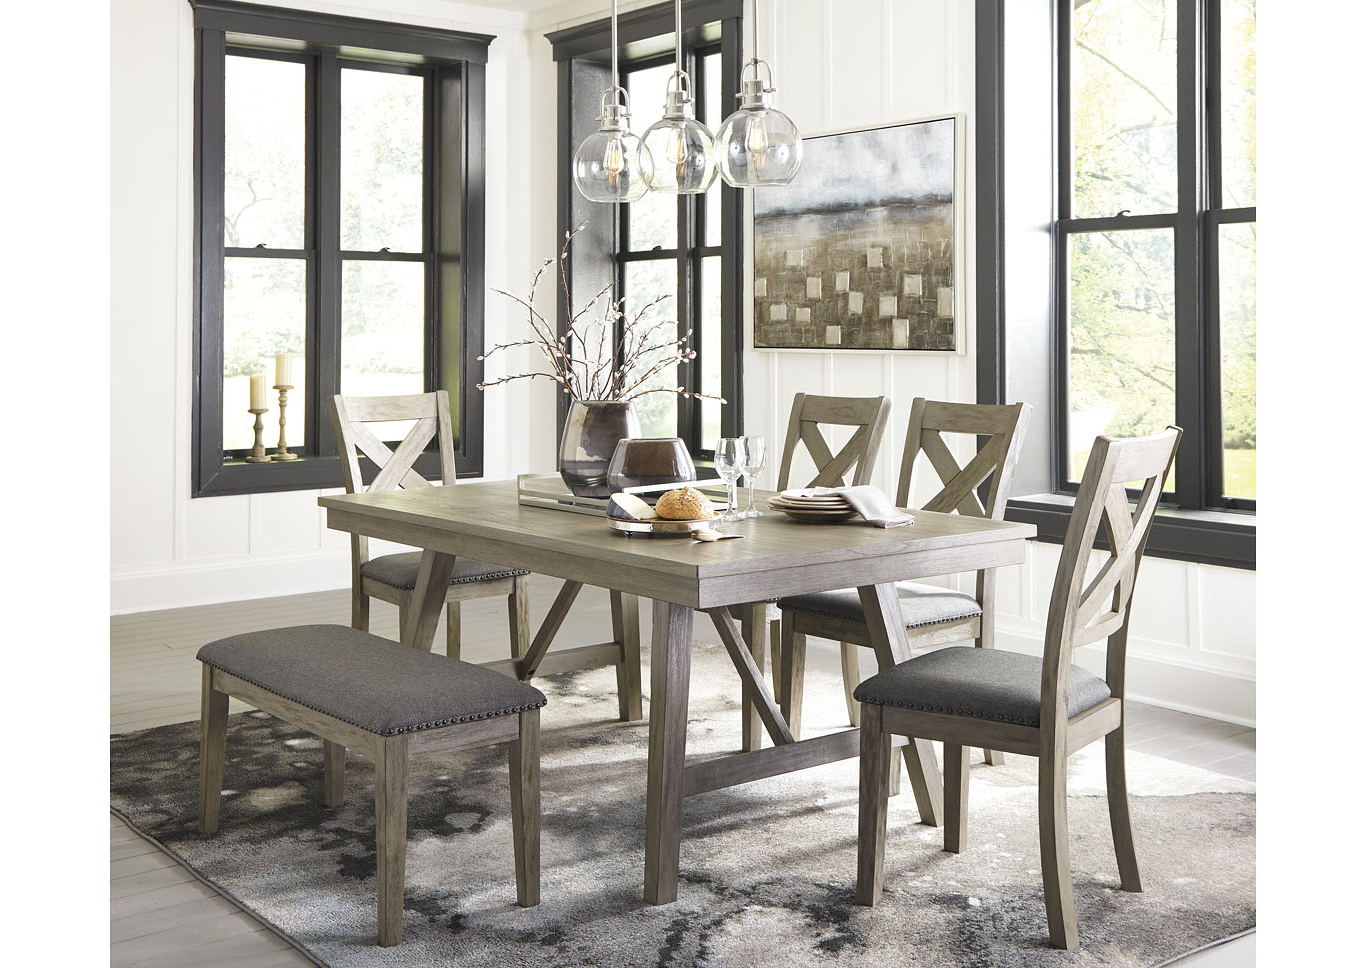 Trendy Coaster Contemporary 6 Seating Rectangular Casual Dining Tables Regarding Johnson's Furniture Aldwin Gray Dining Table W/4 Side Chairs (View 27 of 30)